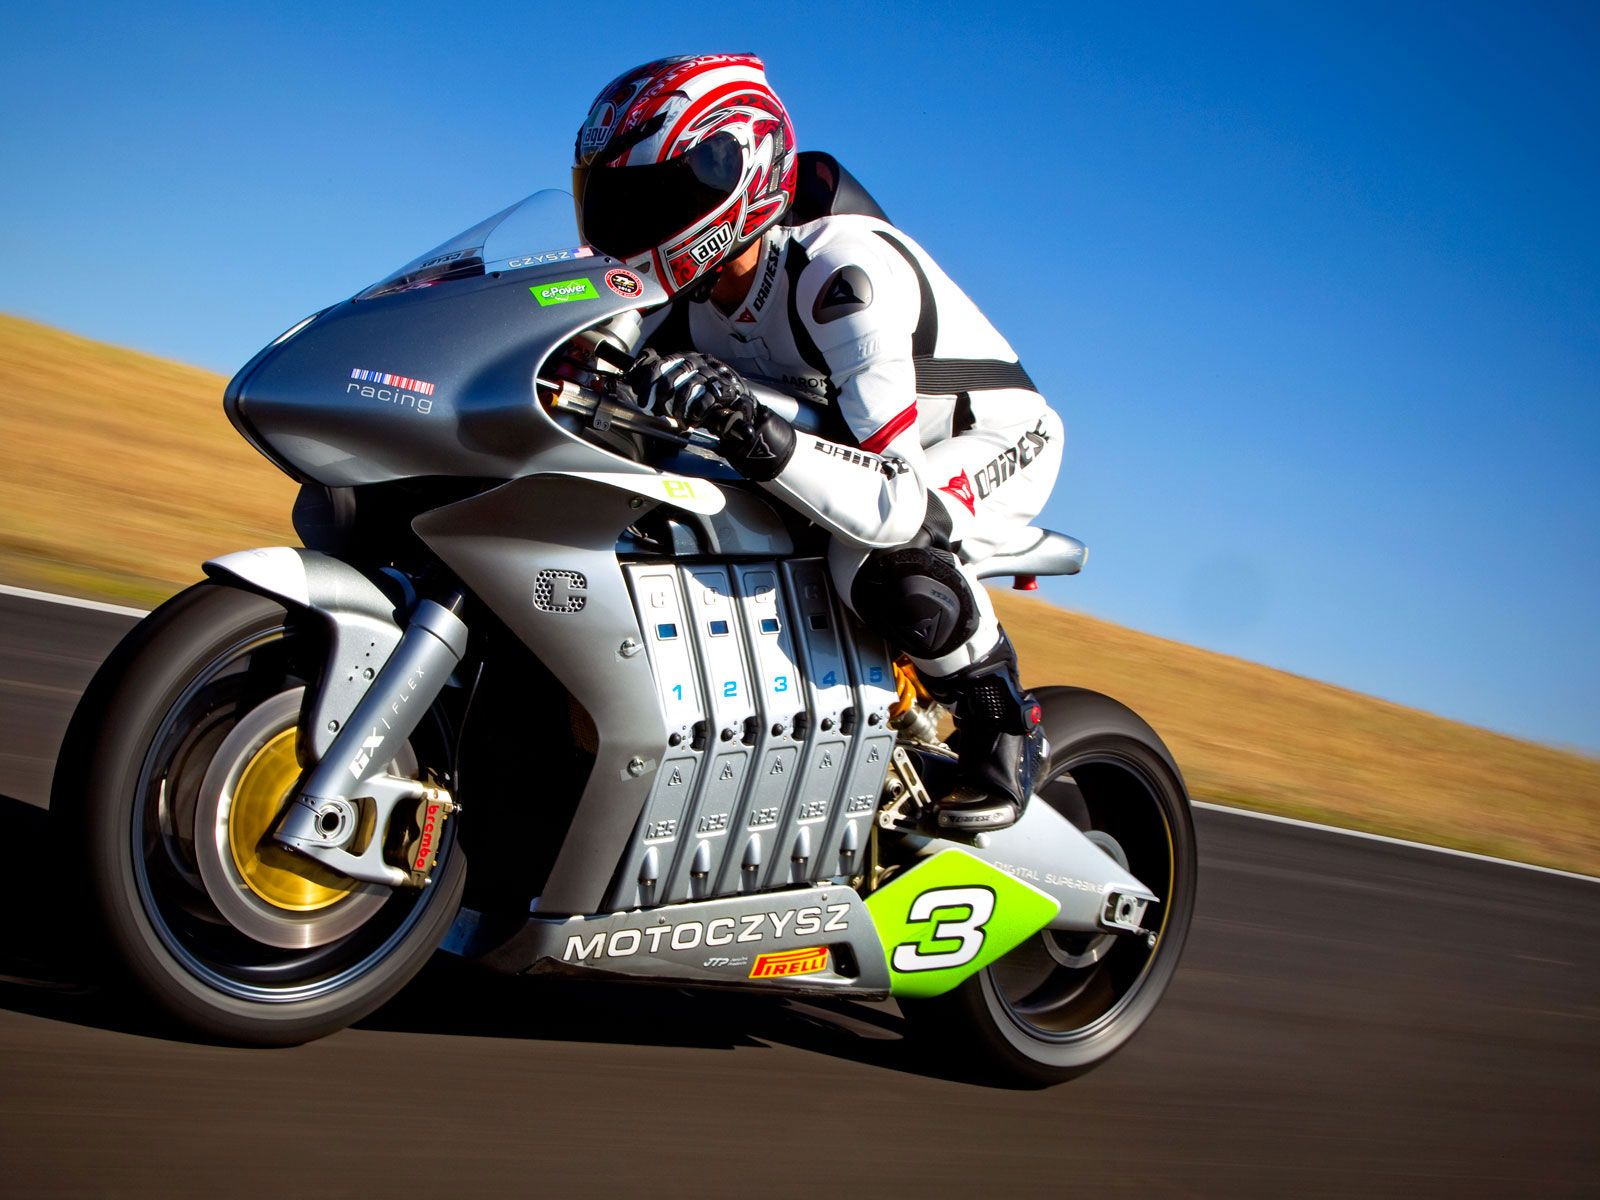 Motorcycle Insurance Quote >> Sport Bike Parts, Service & Performance Upgrades Moline & Rock Island, IL - Hobart's Cycle